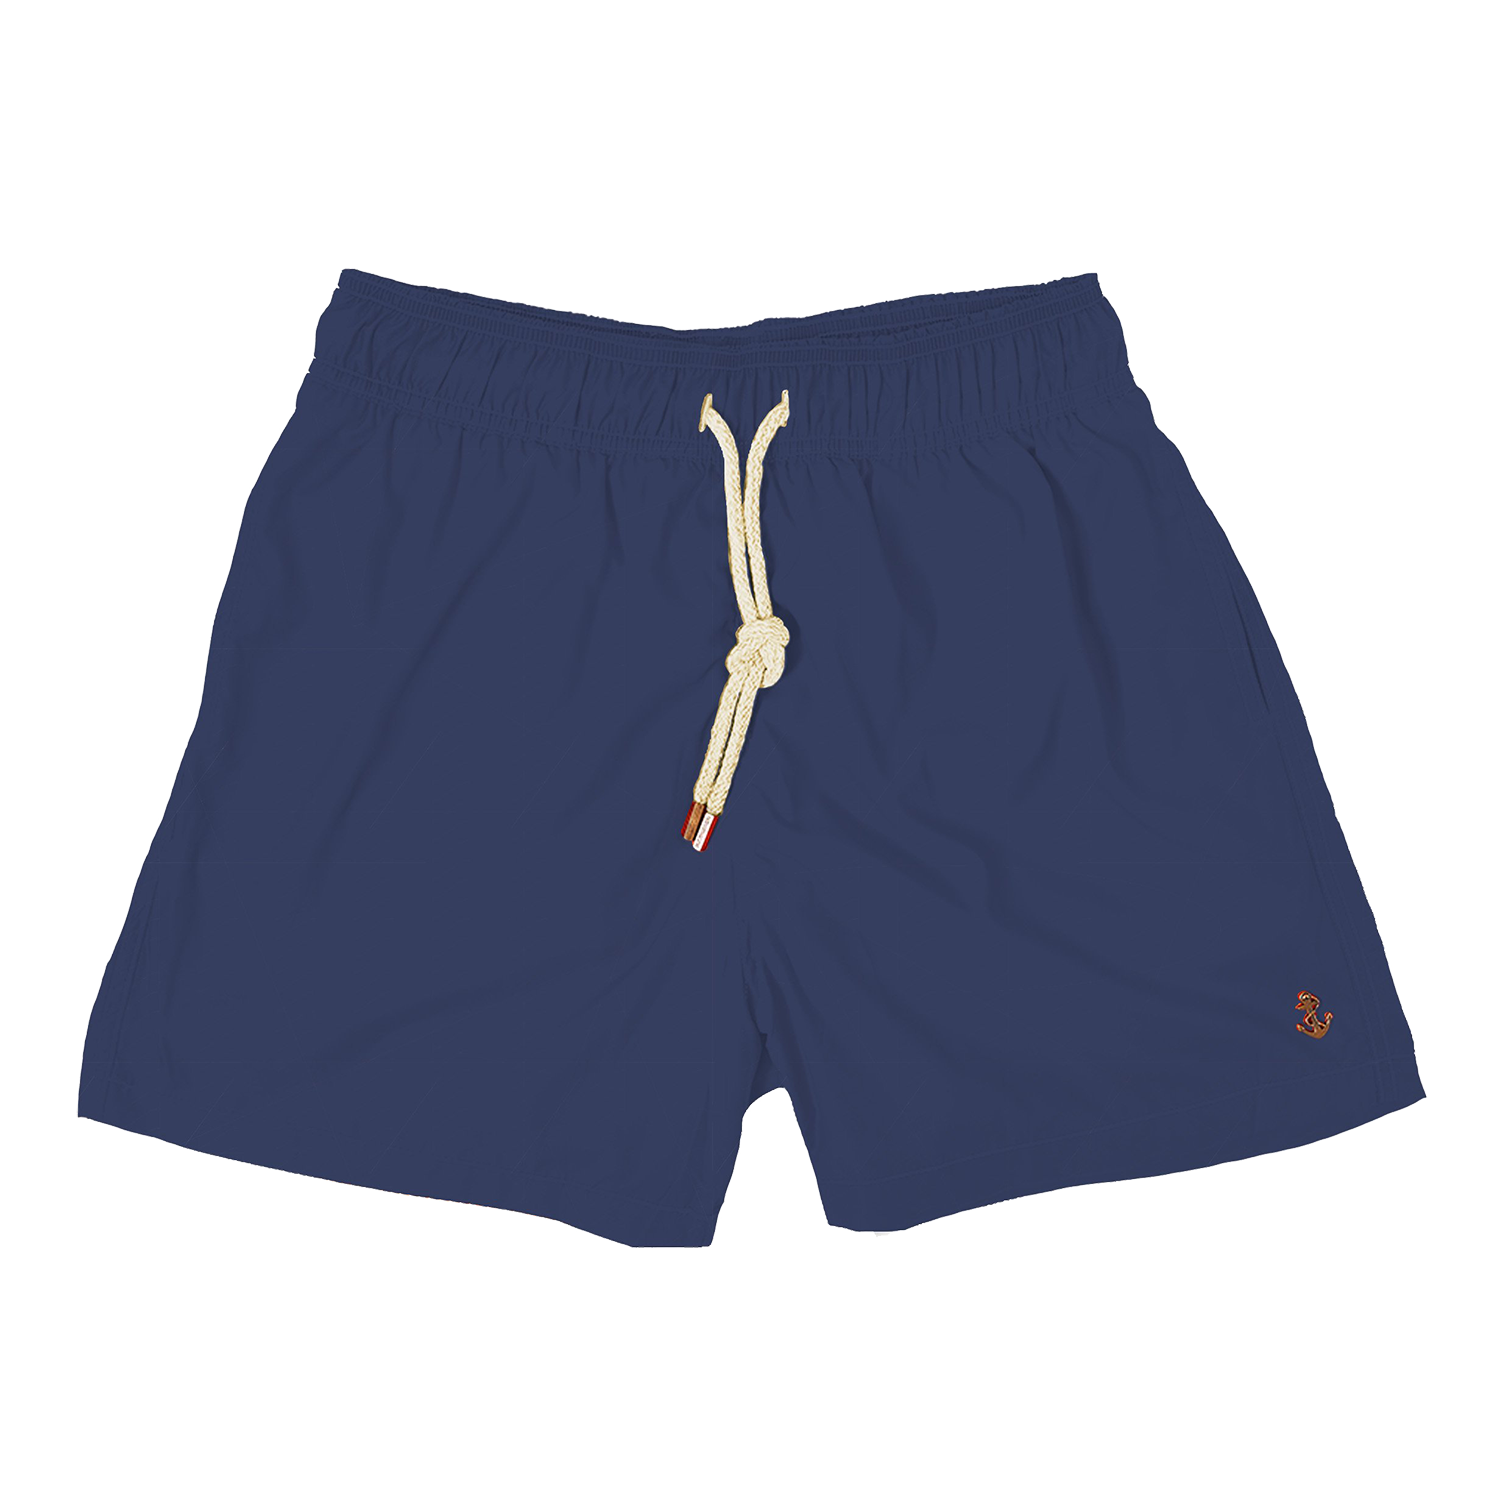 classic navy - mens swimwear - retromarine